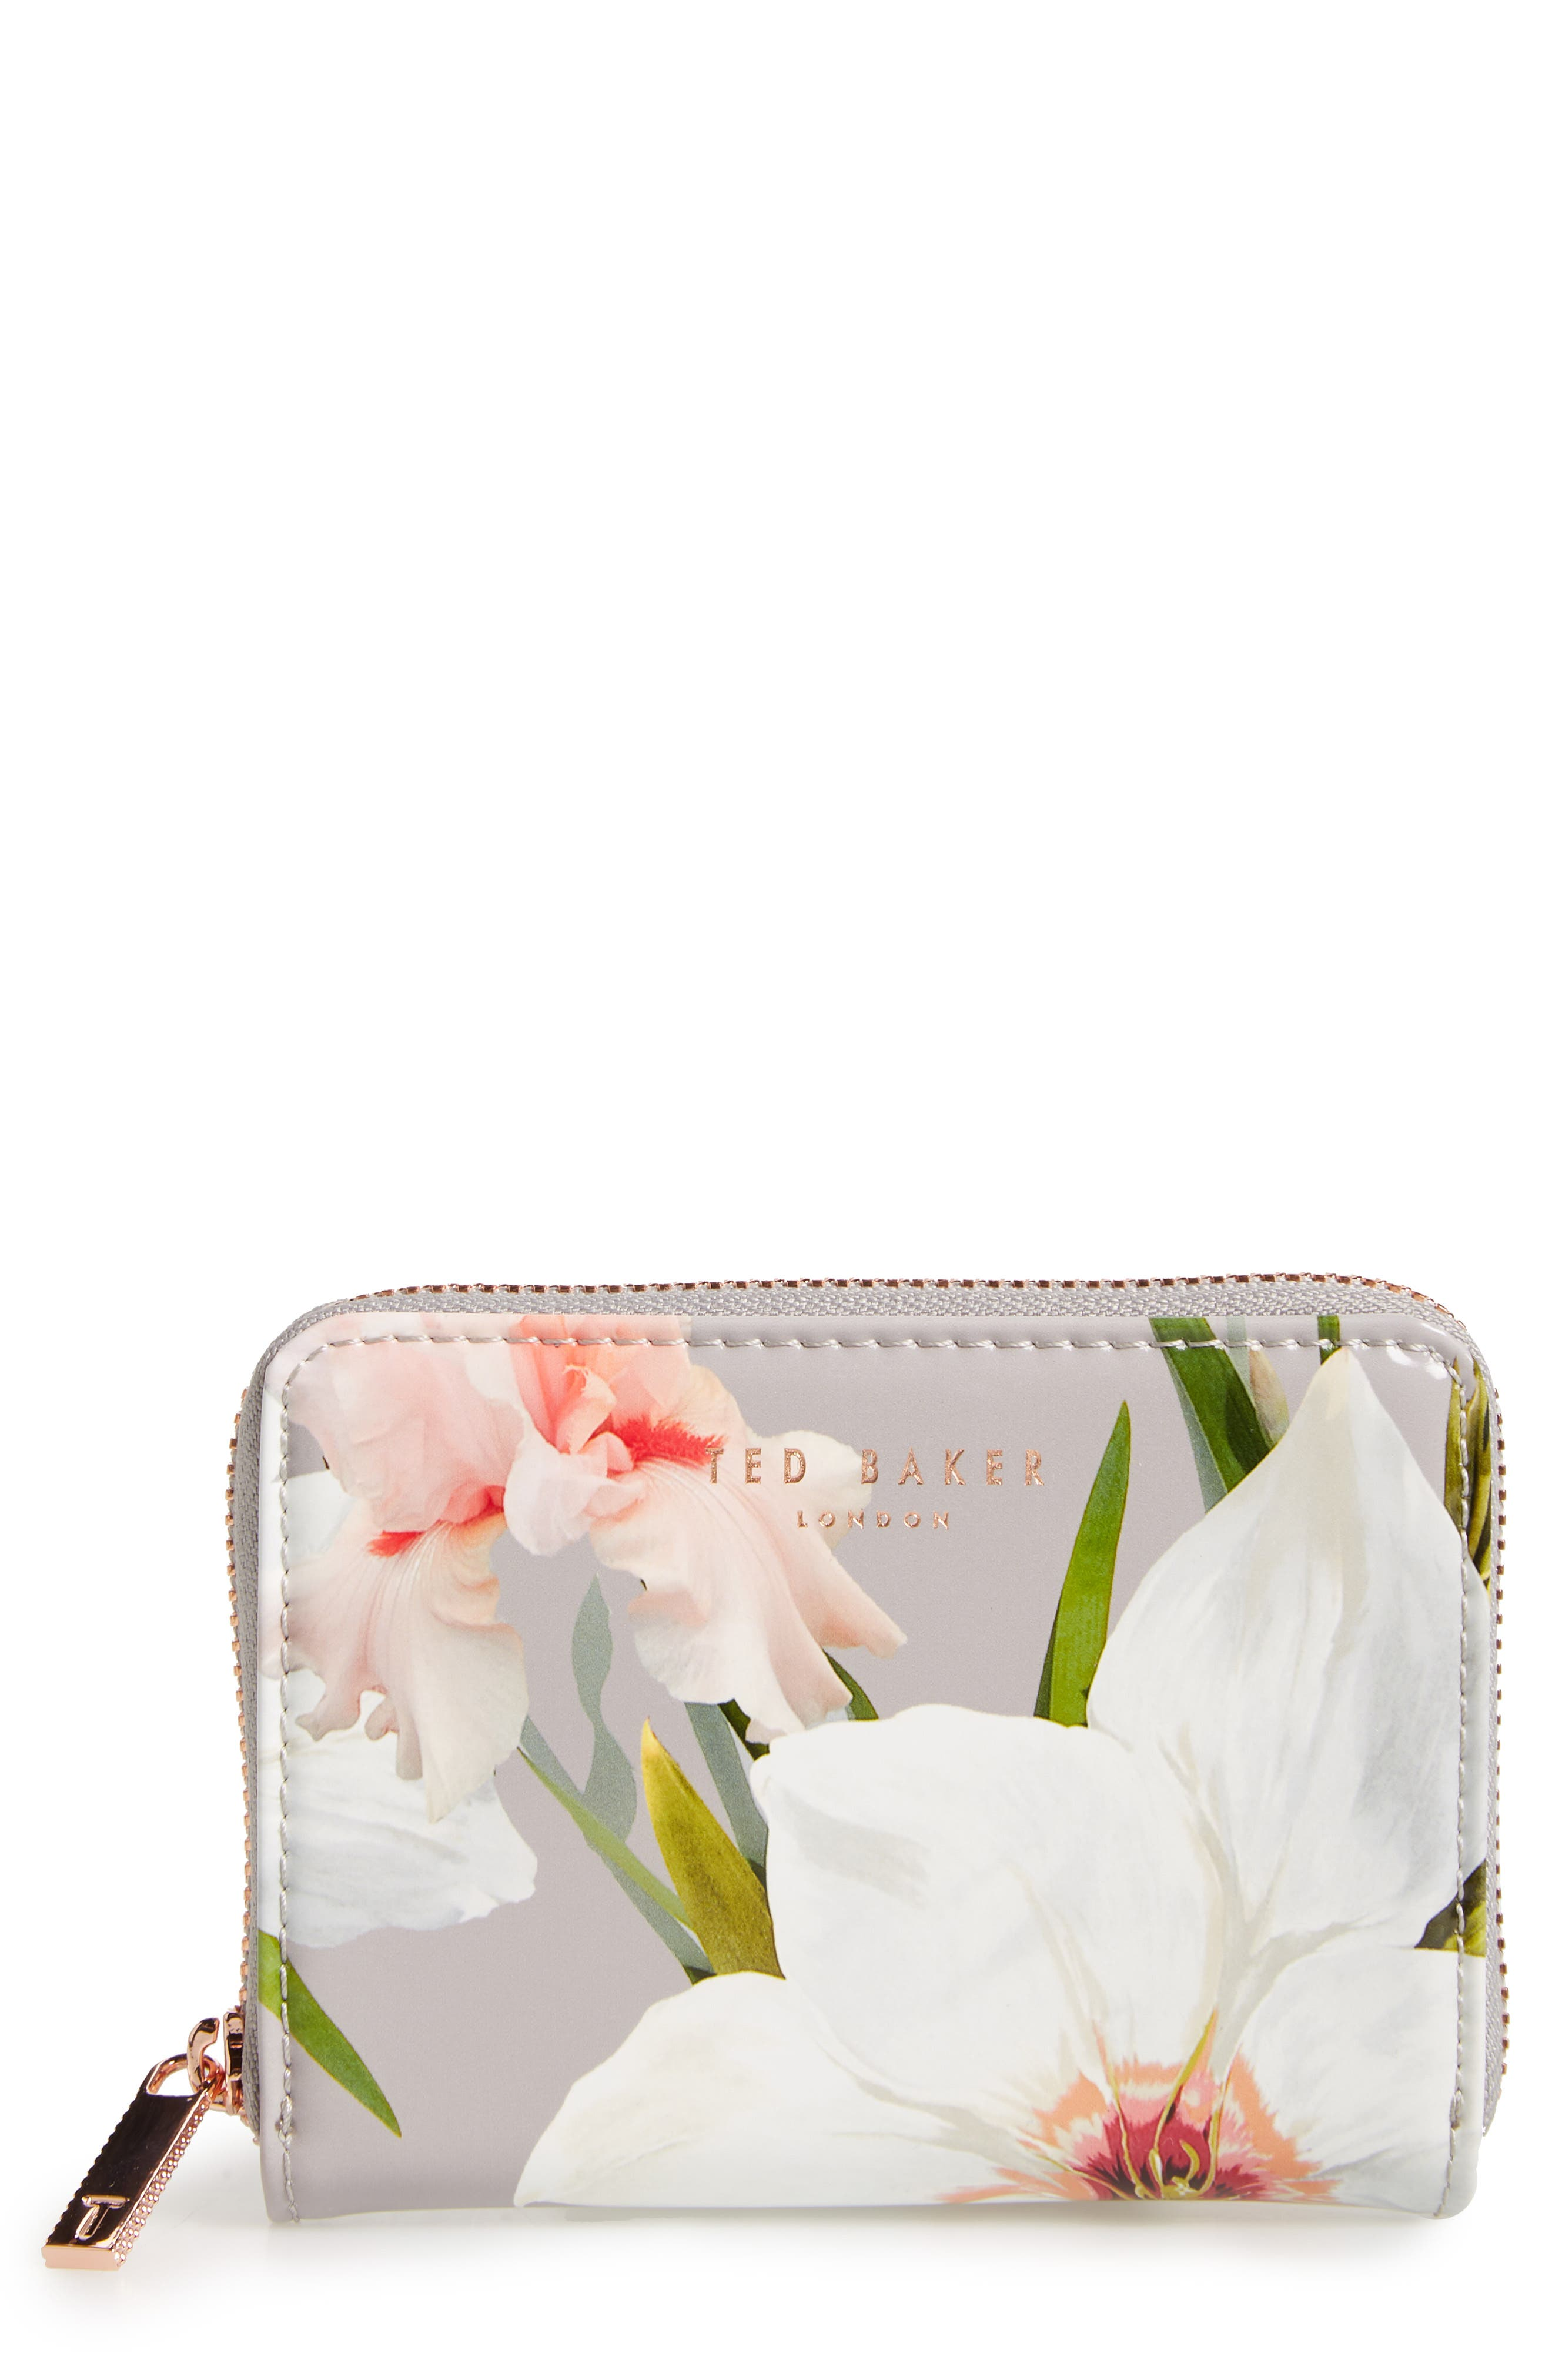 Vallie Chatsworth Bloom Leather Zip Coin Purse,                             Main thumbnail 1, color,                             020